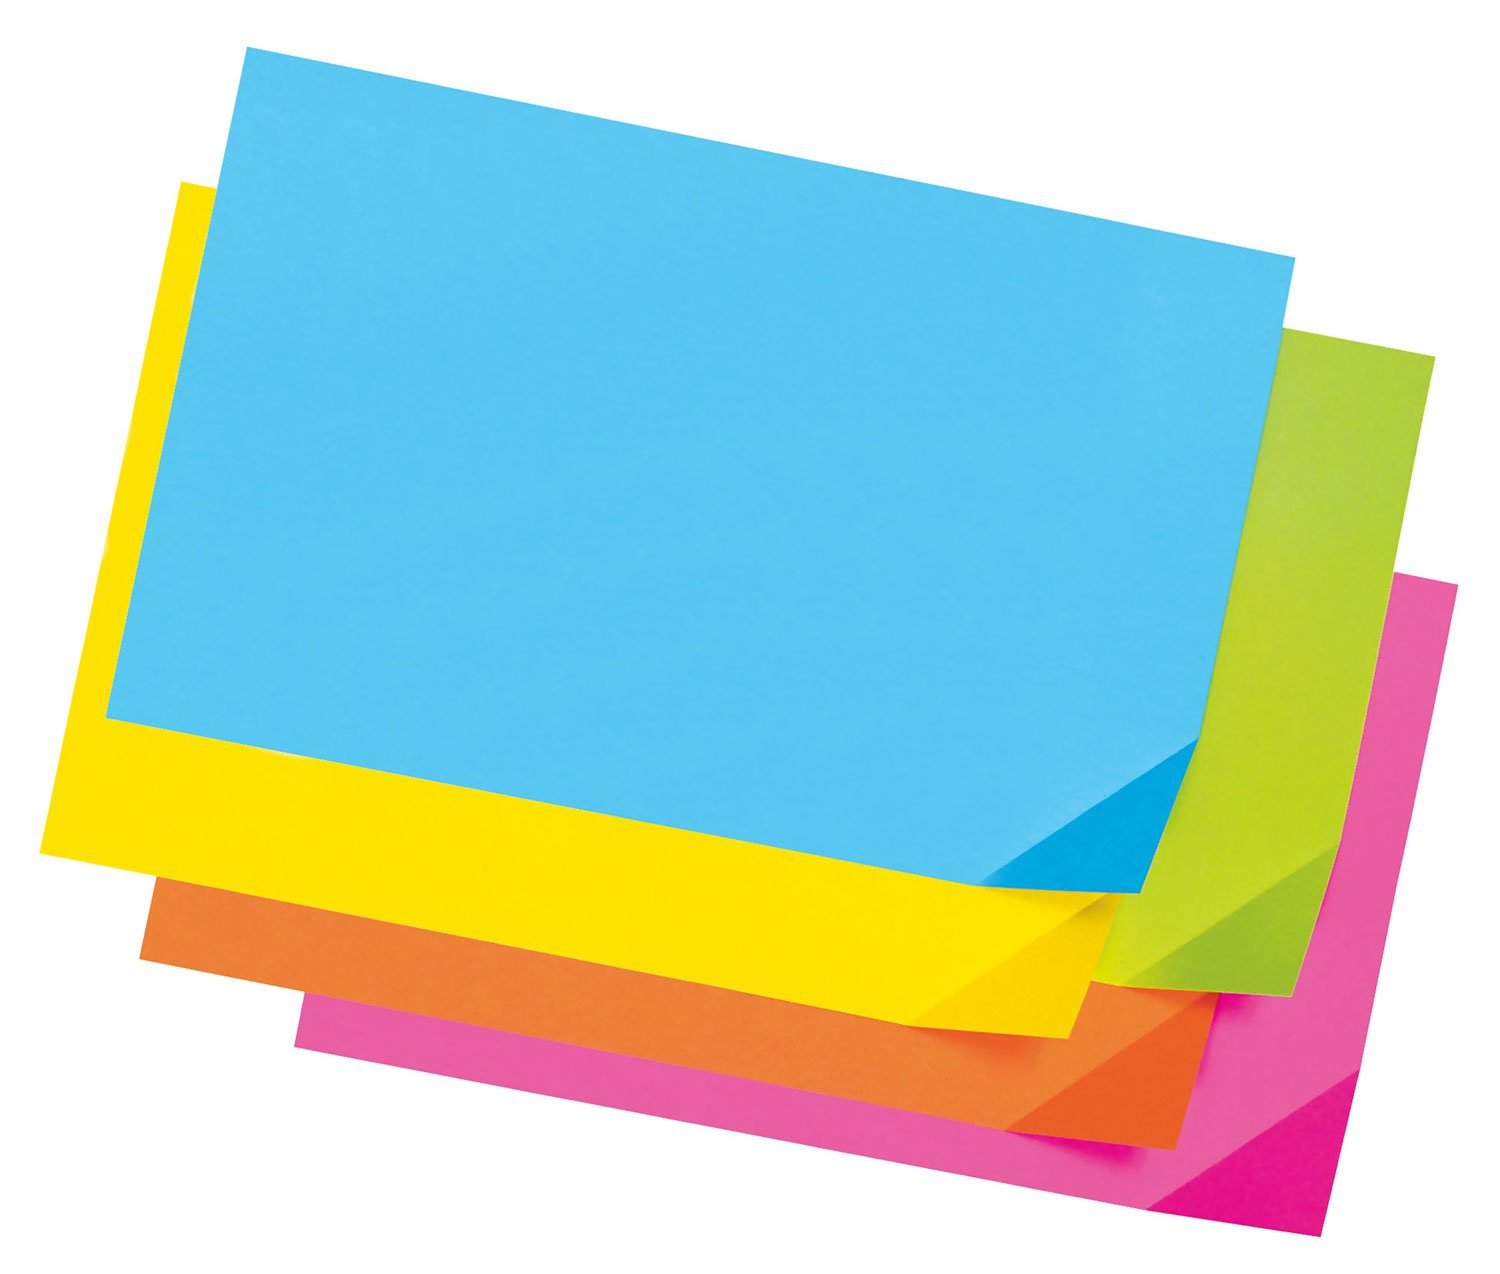 1712 100 Sheets Assorted Colors Pacon Colorwave Super Bright Tagboard 12 x 18 Inches